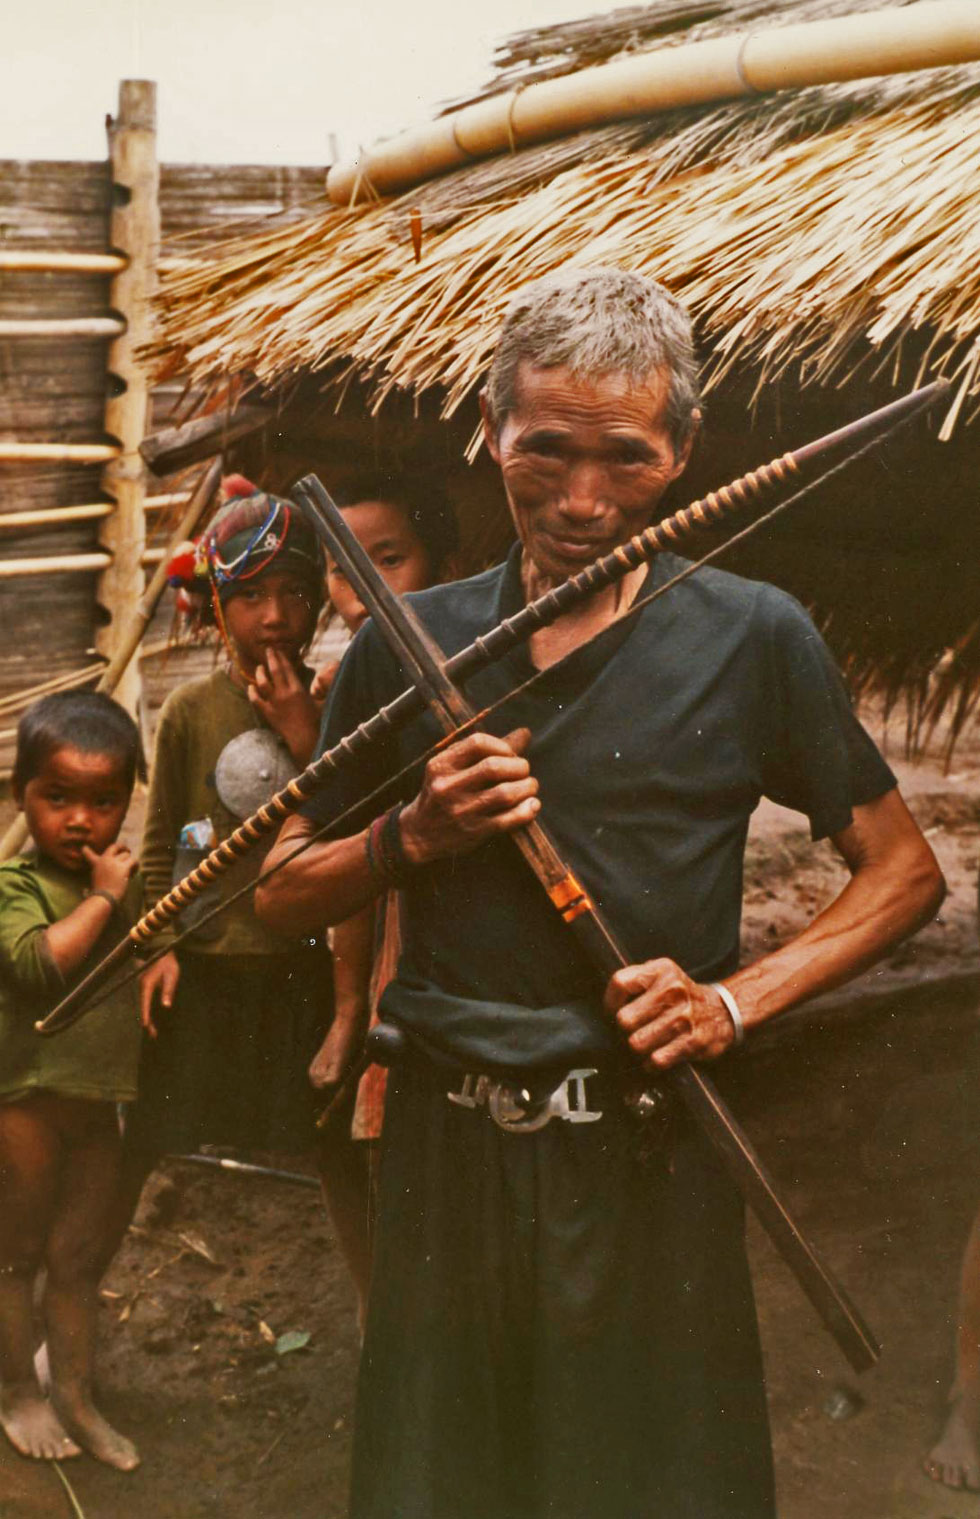 tribal-with-crossbow-thaila